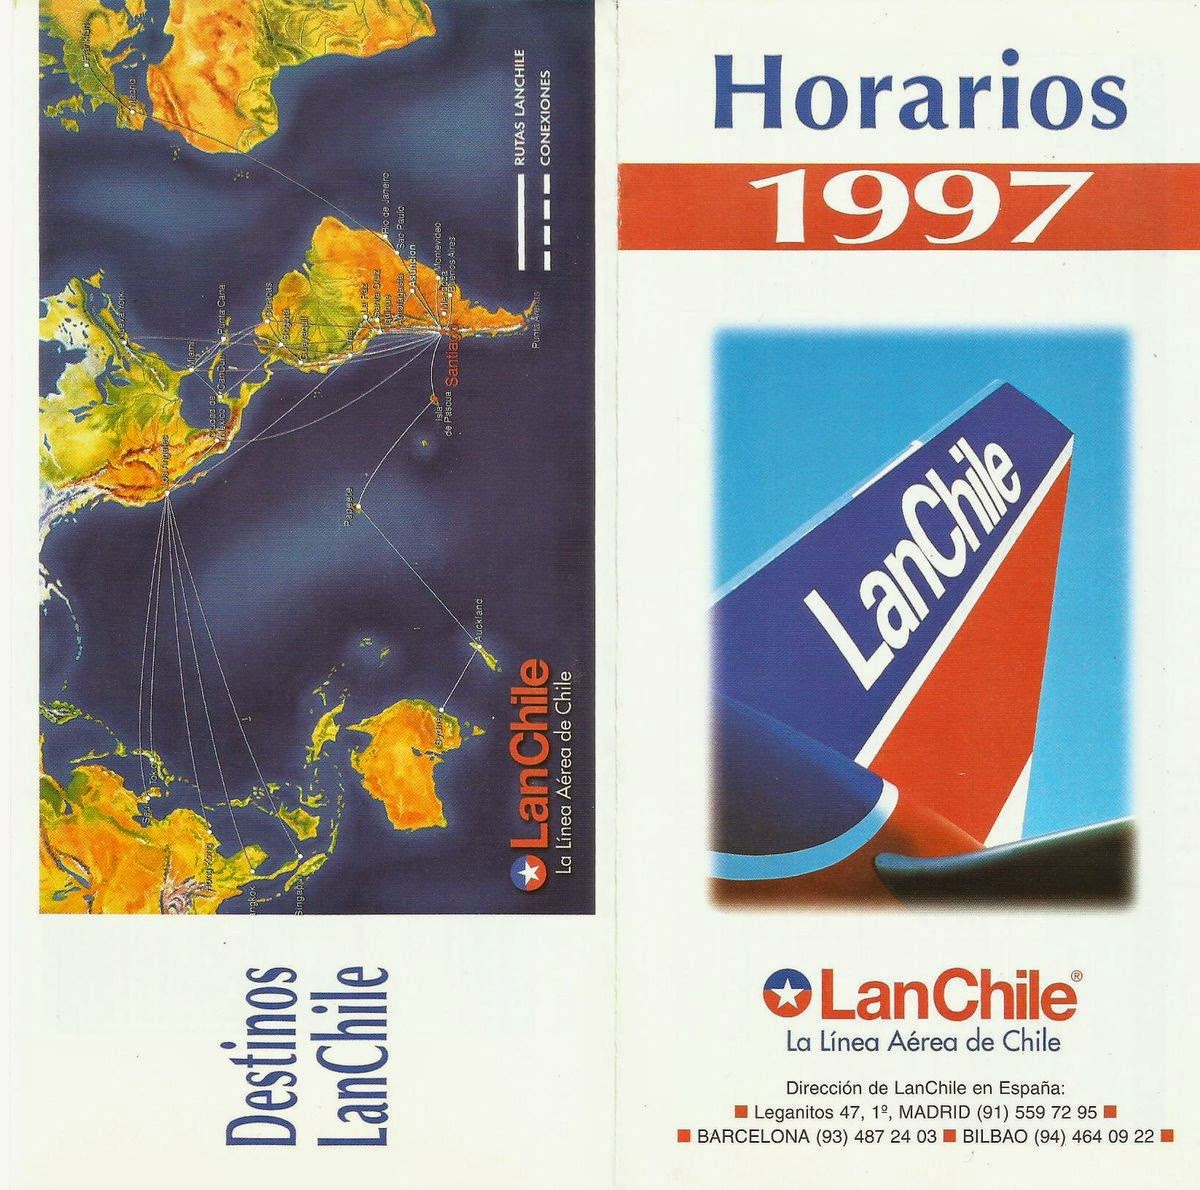 business analysis for lan chile airline Earn applicable base miles each time you purchase and fly on a published eligible fare ticket on latam airlines, a member of the oneworld alliance (including affiliates latam express, latam peru, latam argentina, and latam ecuador.